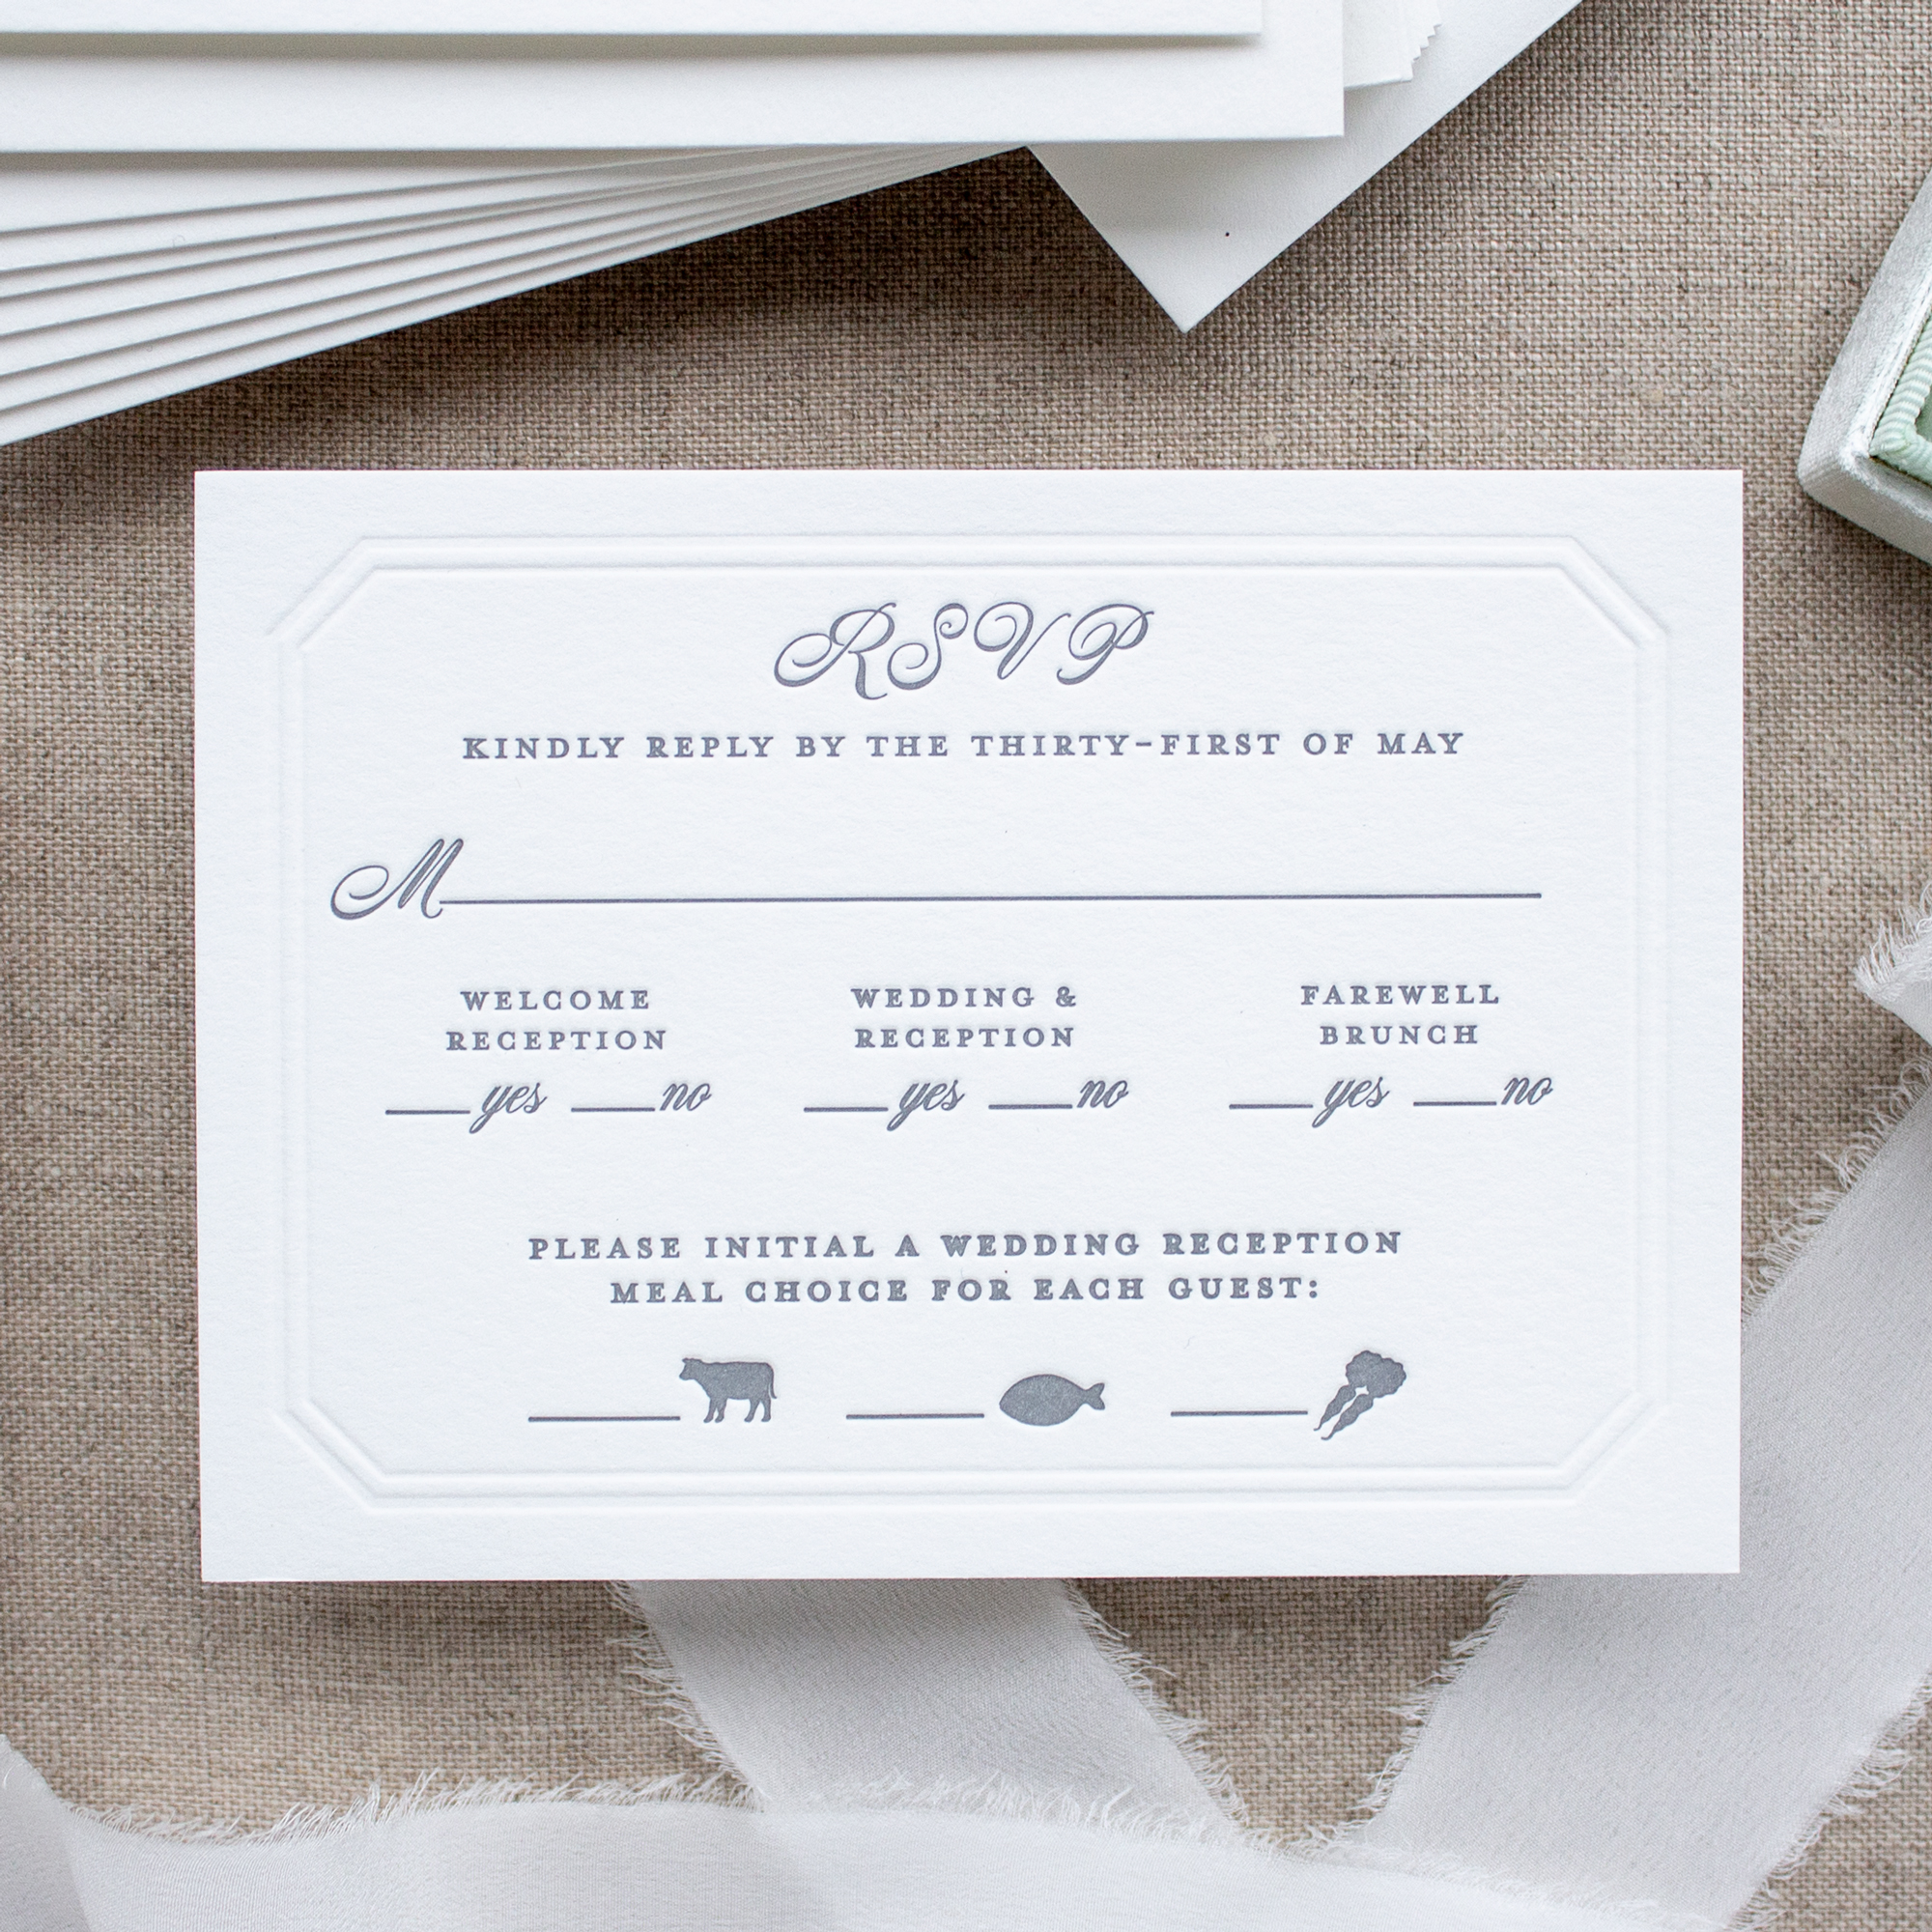 Letterpress RSVP card with meal choice icons